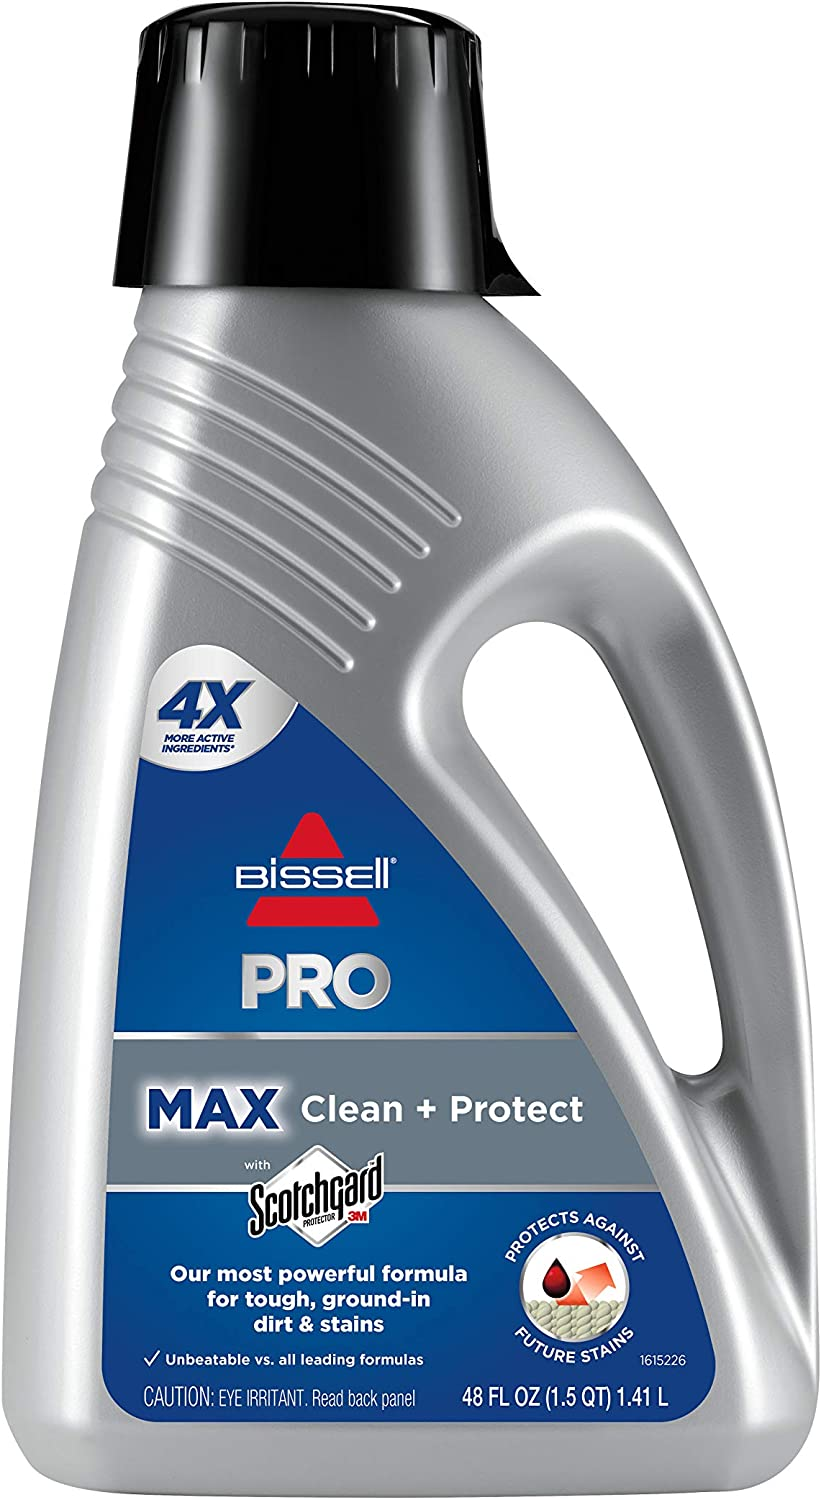 Best for Deep-Cleaning - Bissell 78H63 Deep Clean Pro Concentrated Carpet Shampoo